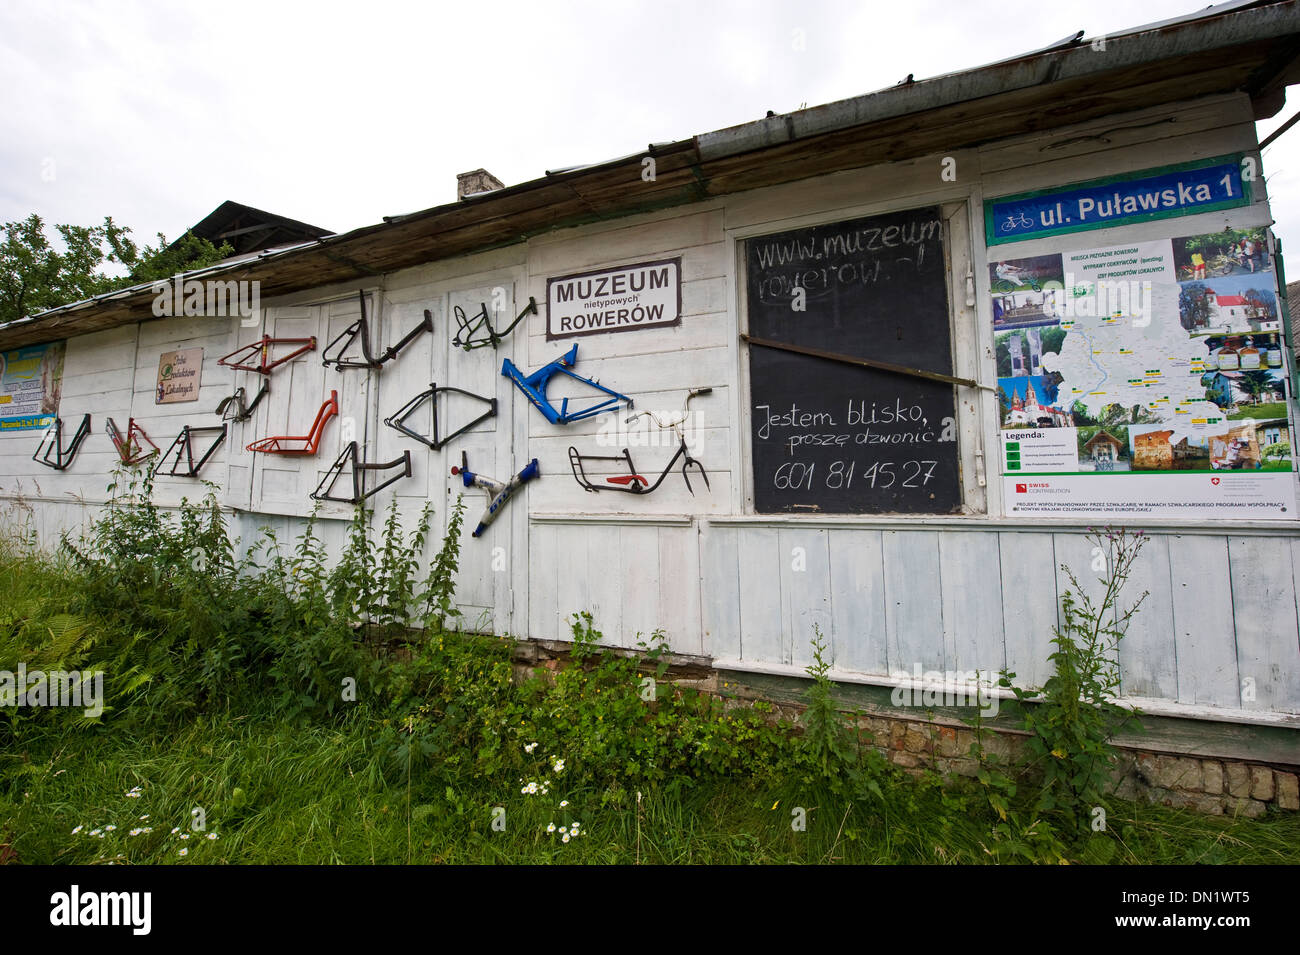 A small collection and museum of odd bicycles in Gołąb, a village in central Poland, - Stock Image